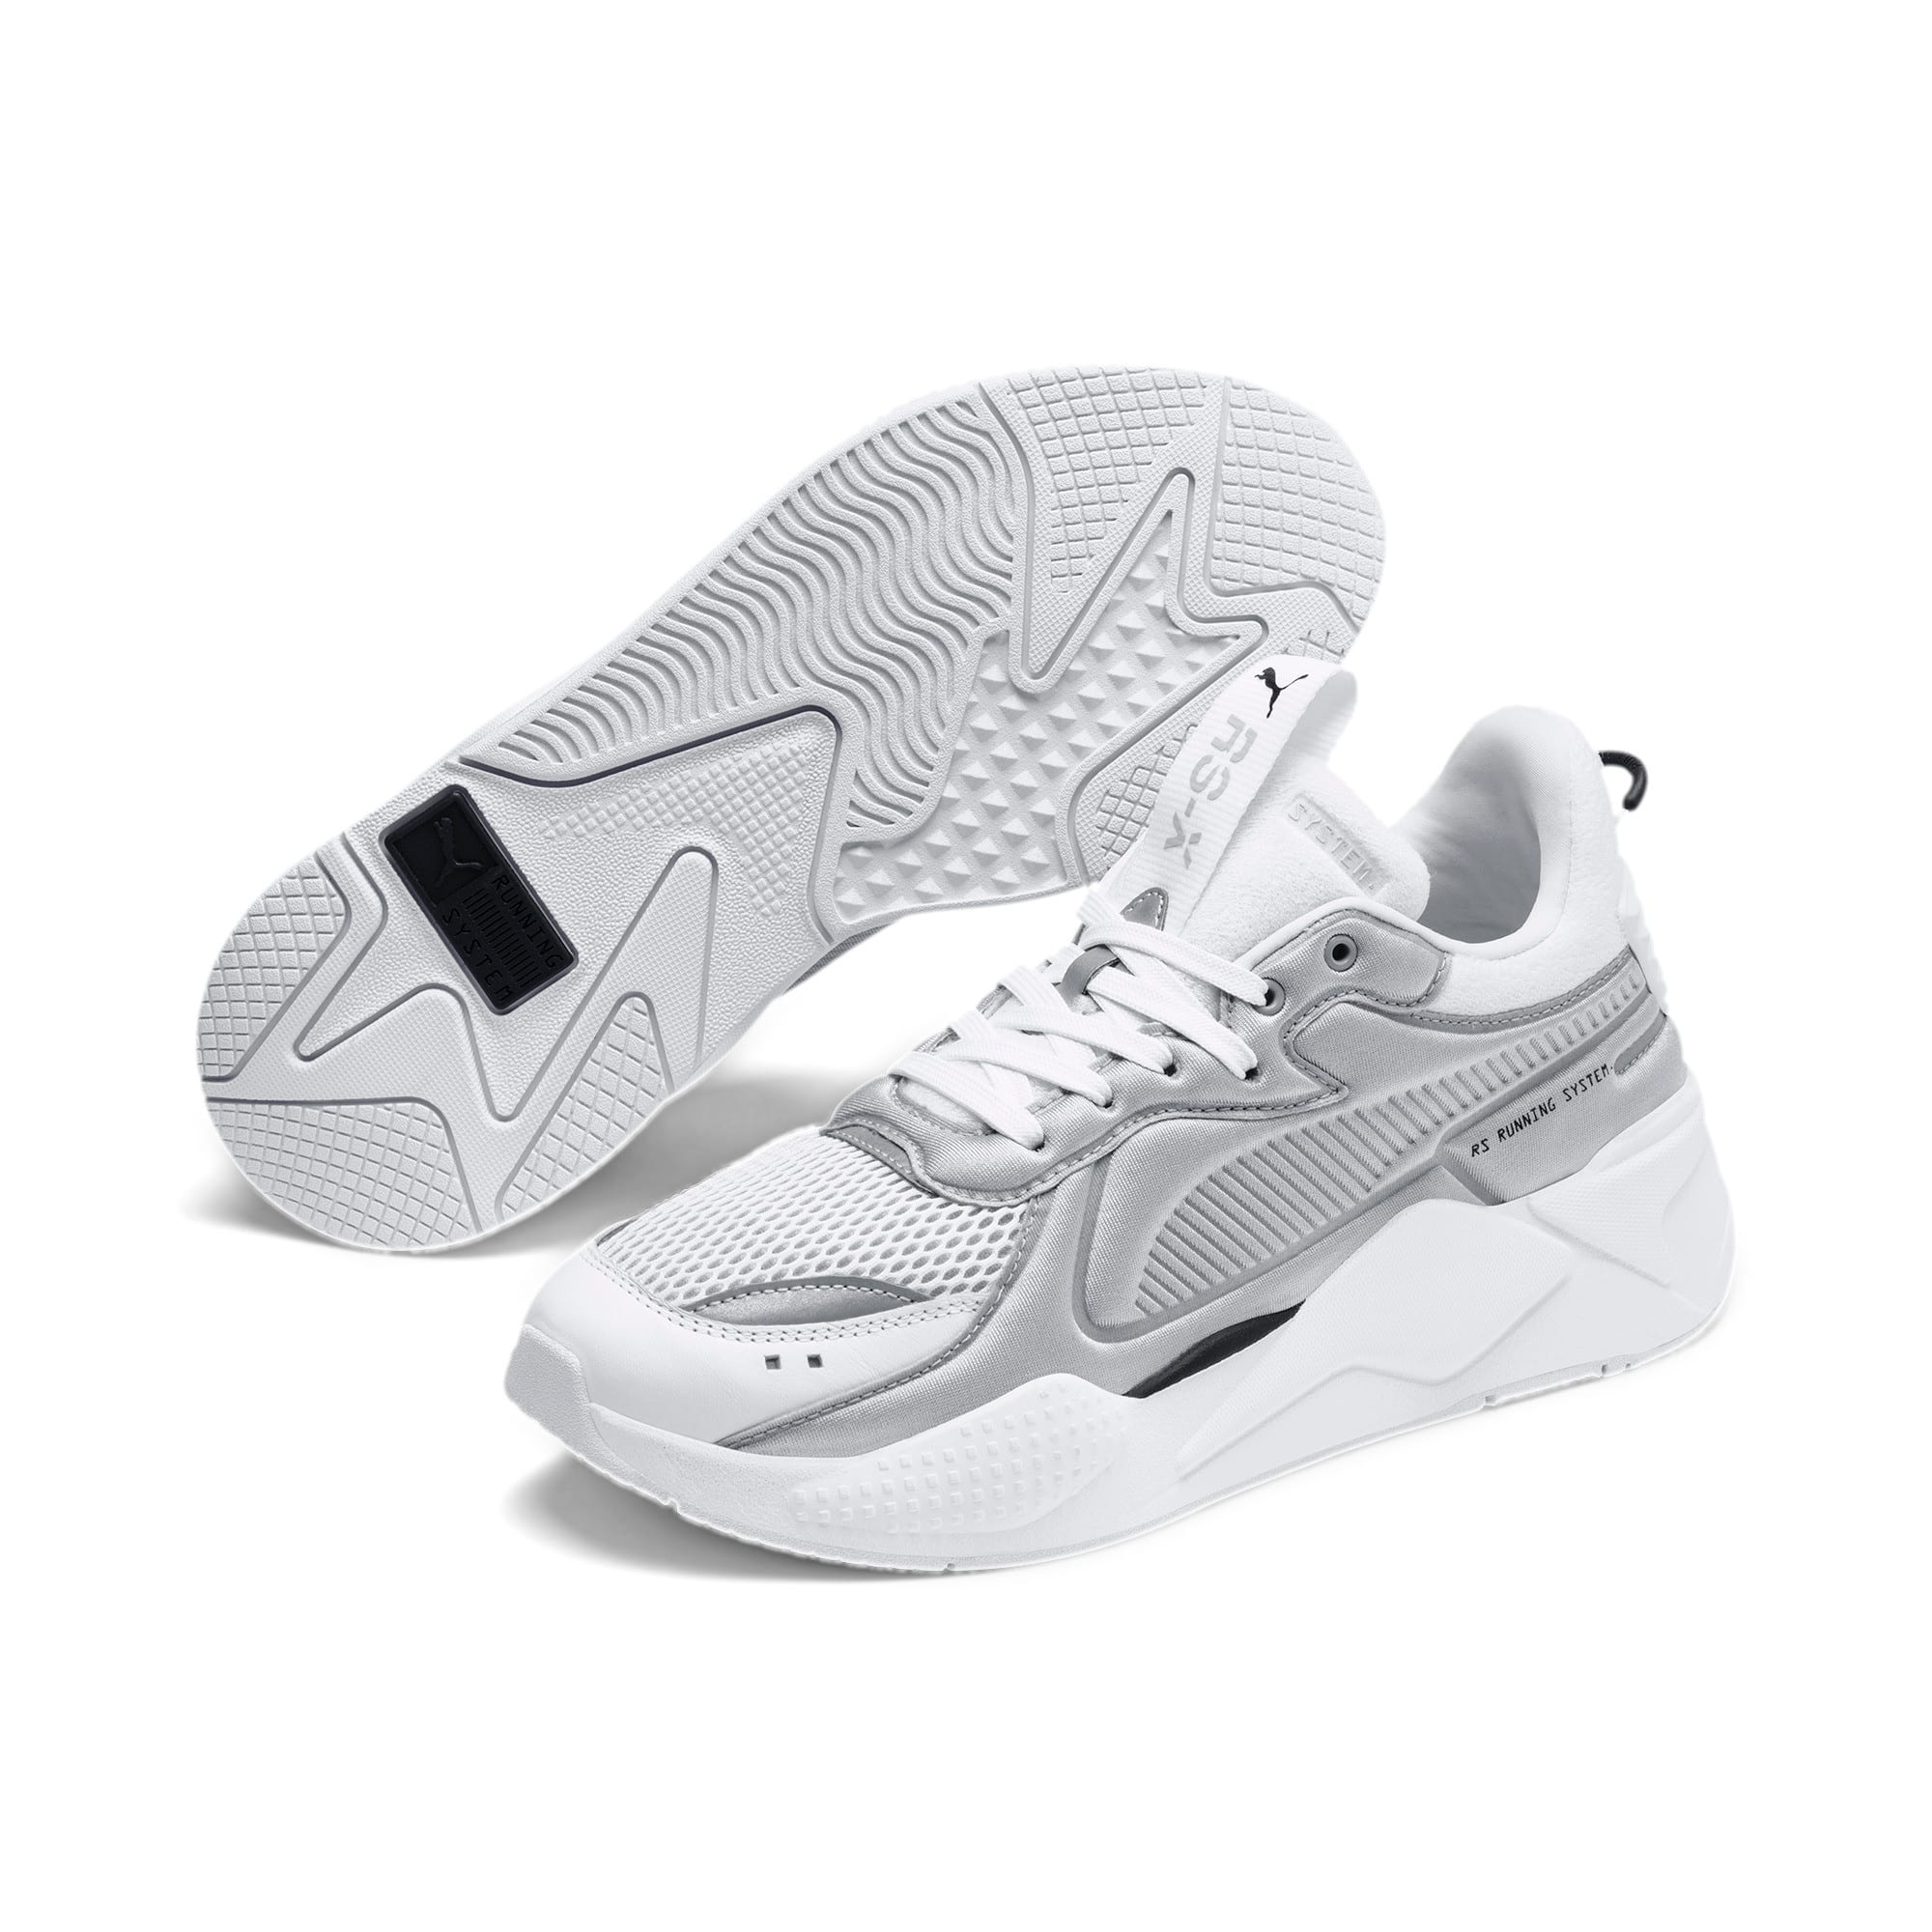 RS-X Softcase Trainers, Puma White-High Rise, large